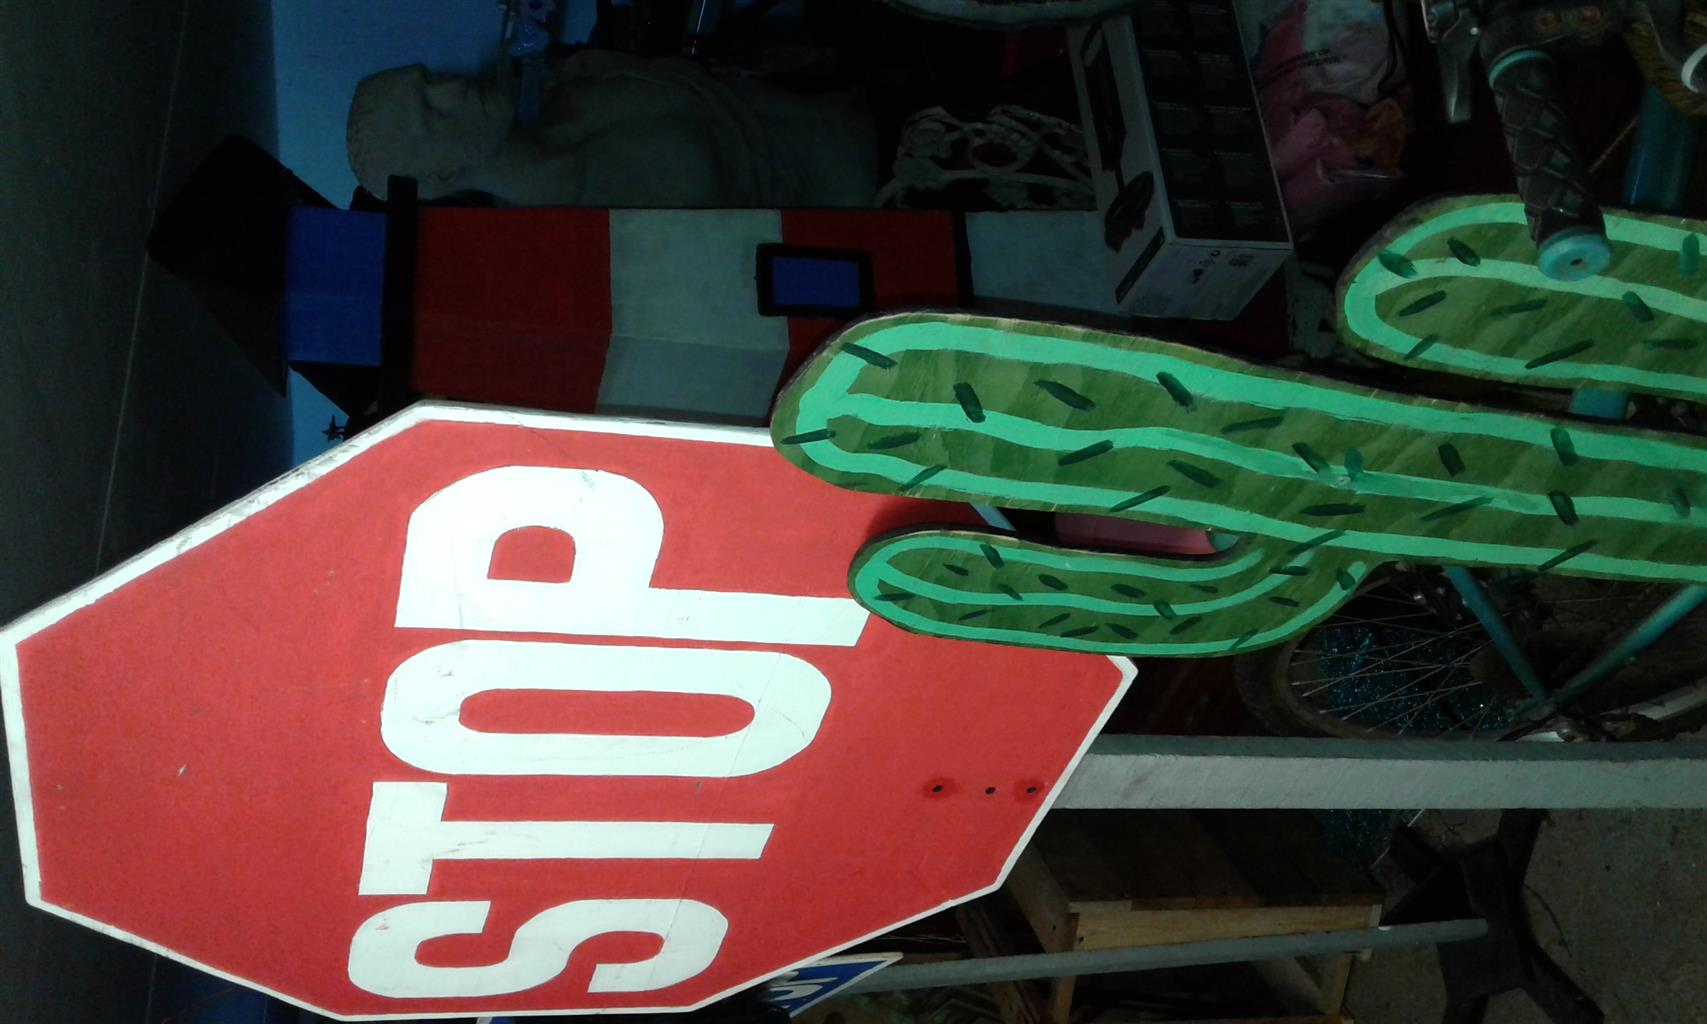 Clothing, Shoes, Accessories, Bric a Brac and all shop fittings